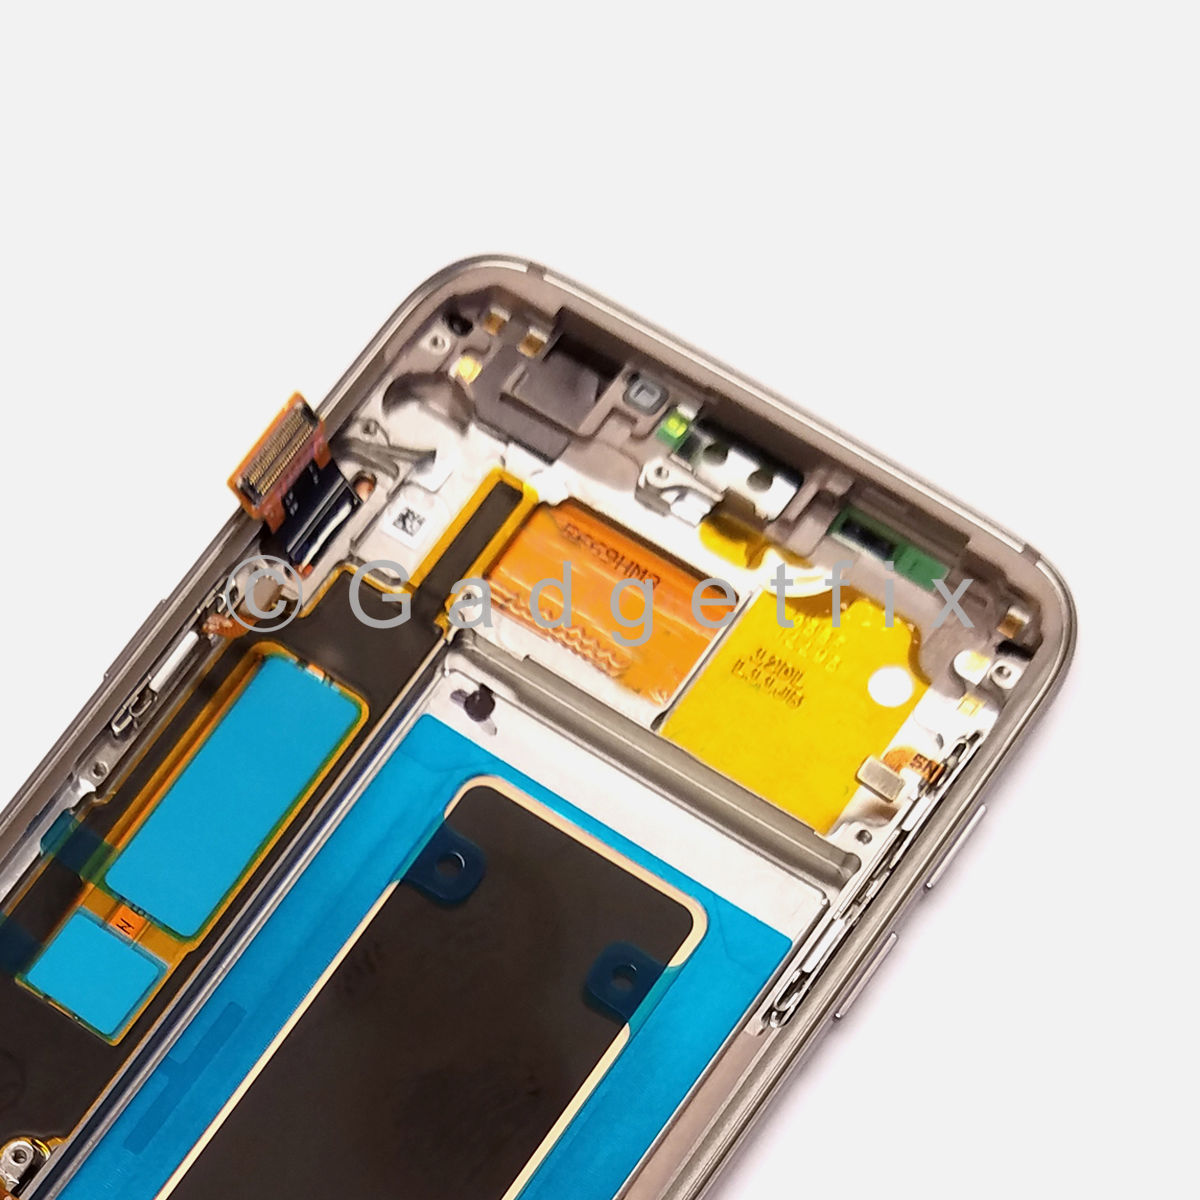 Oem Silver Samsung Galaxy S7 Edge G935f Lcd Display Touch